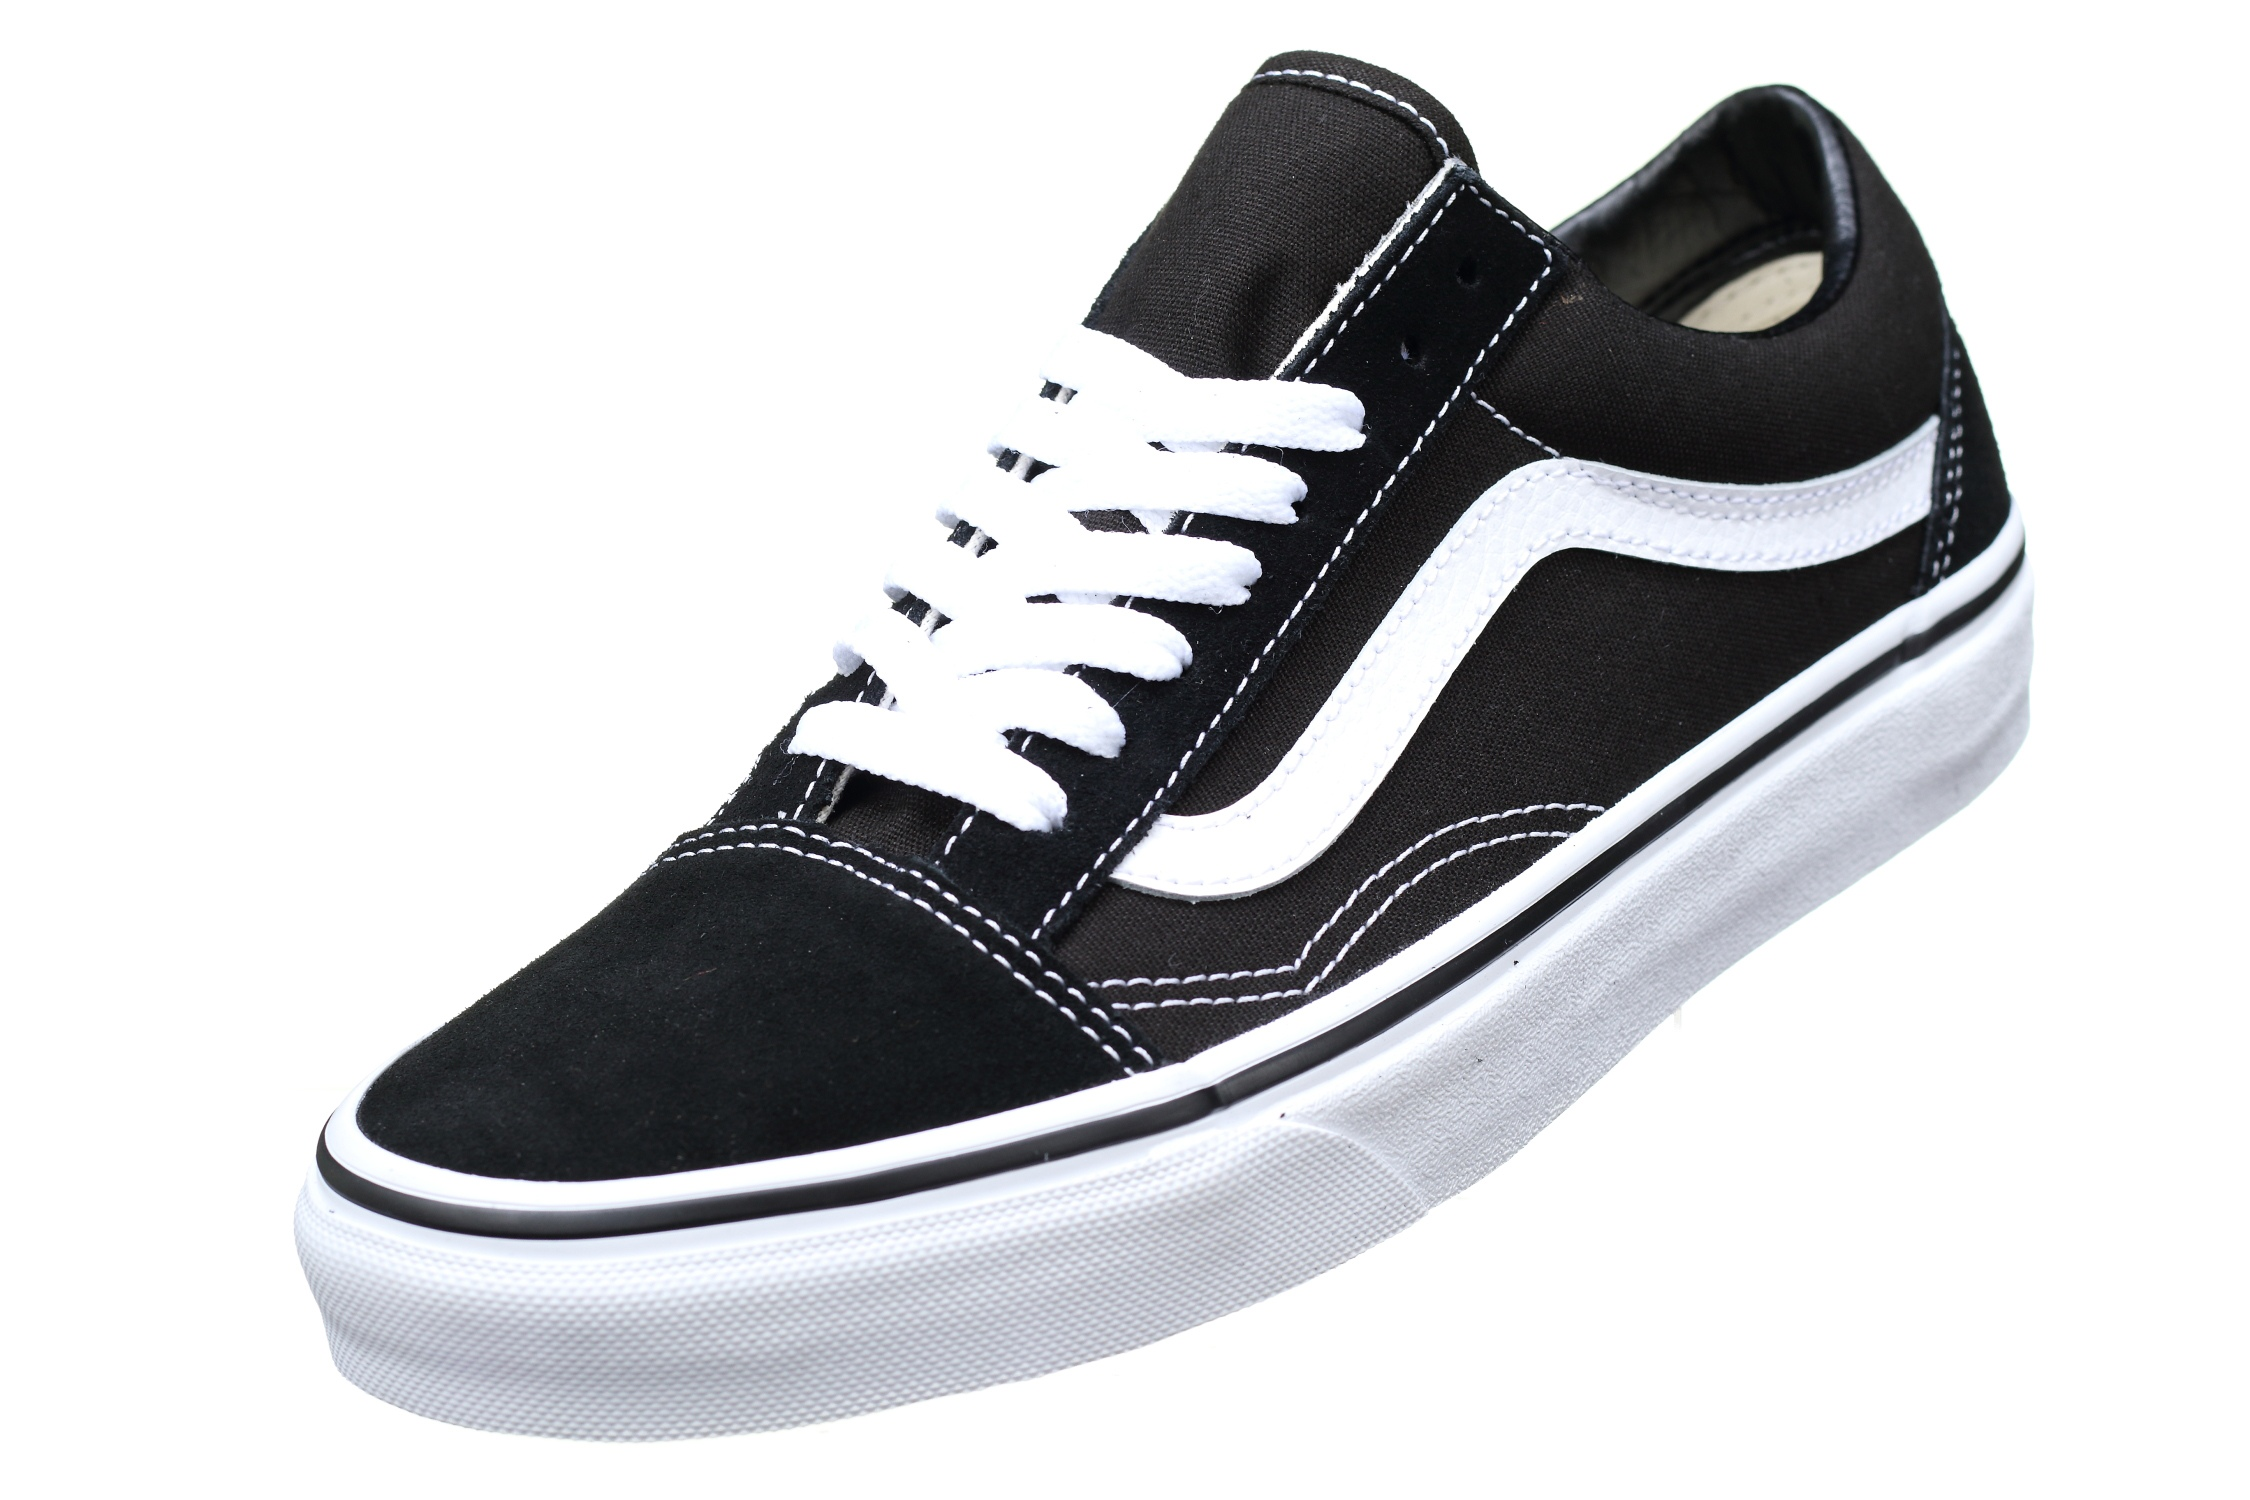 http://www.leadermode.com/153153/vans-old-skool-vd3hy28-black-white.jpg